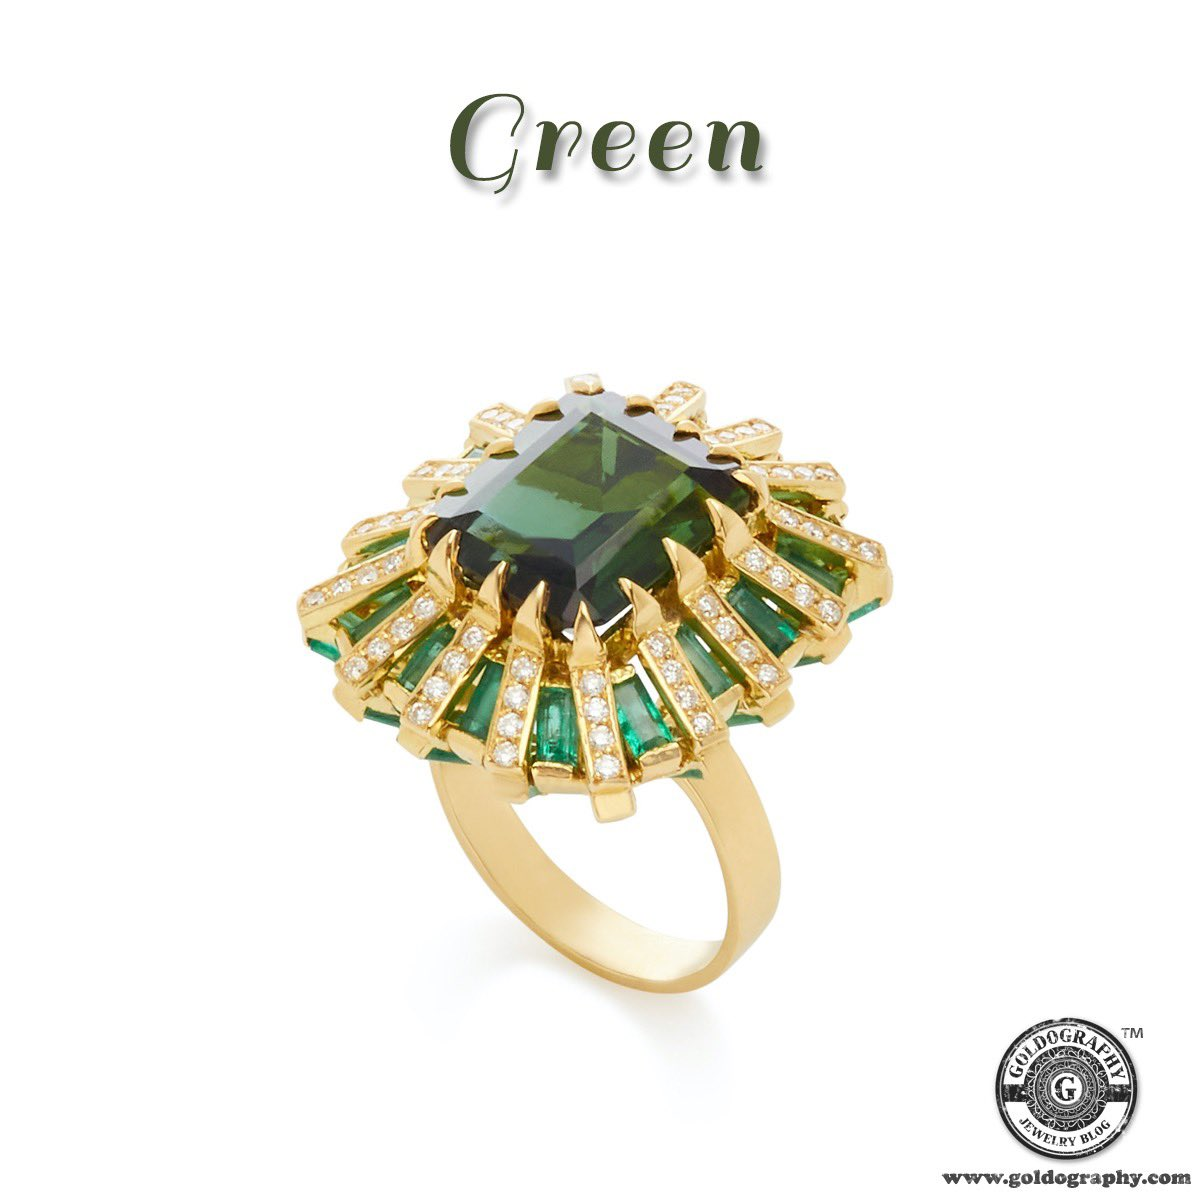 Carol Kauffmann handcrafted ring showcases the shimmering baguette-cut sapphires and faceted green tourmaline stone #CarolKauffmann #18K #YellowGold #Ring #GreenTourmaline #GreenSapphires #Diamonds #Luxury #Gems #Gemstones #Style #Trendy #Fashion #Fashionista #Jewelry #Jewellery